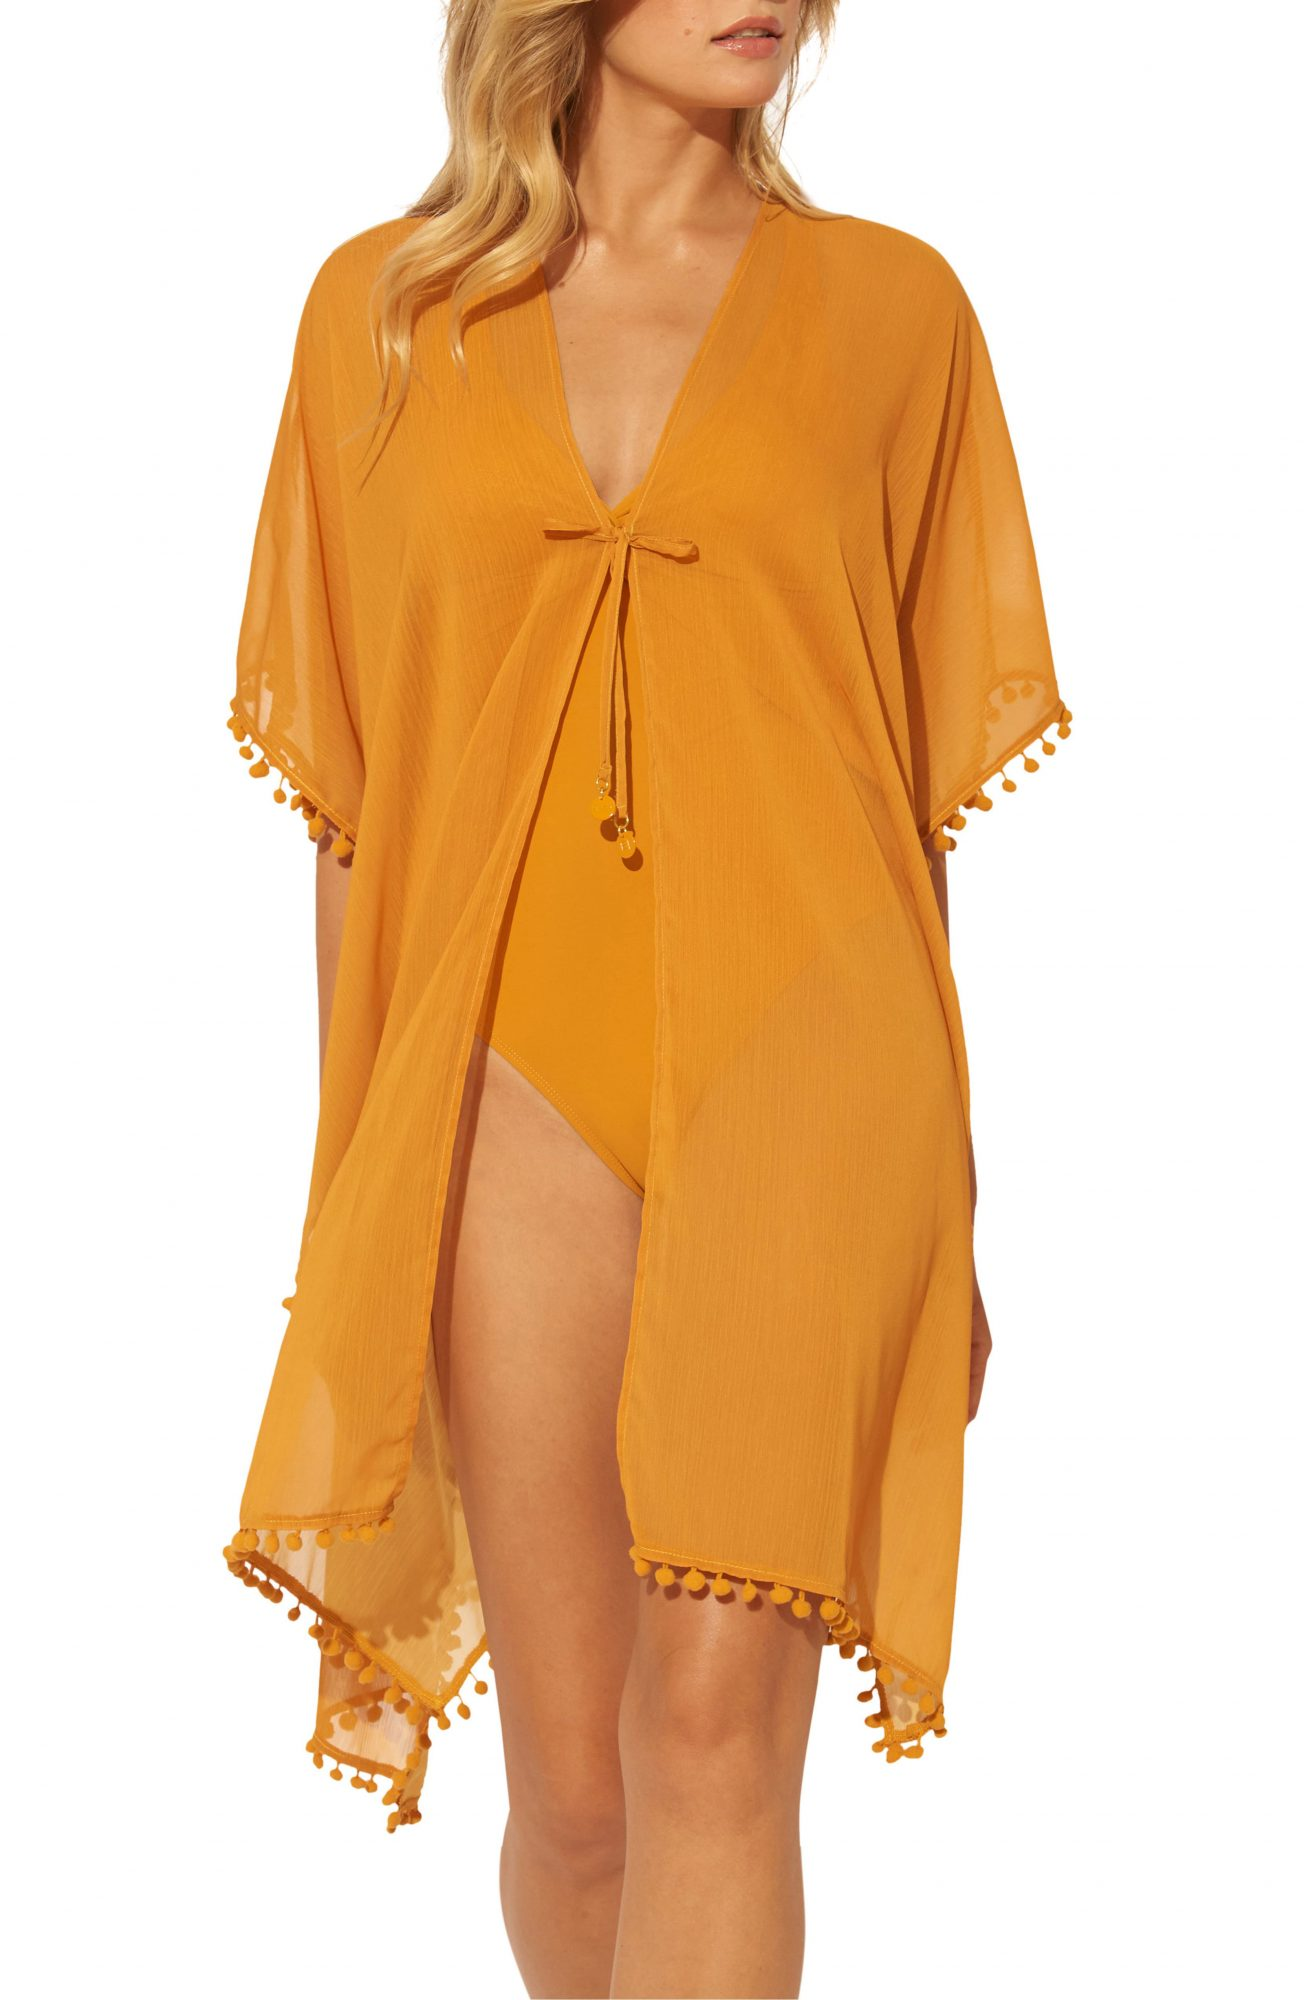 Gypset Pom Trim Cover-Up Caftan